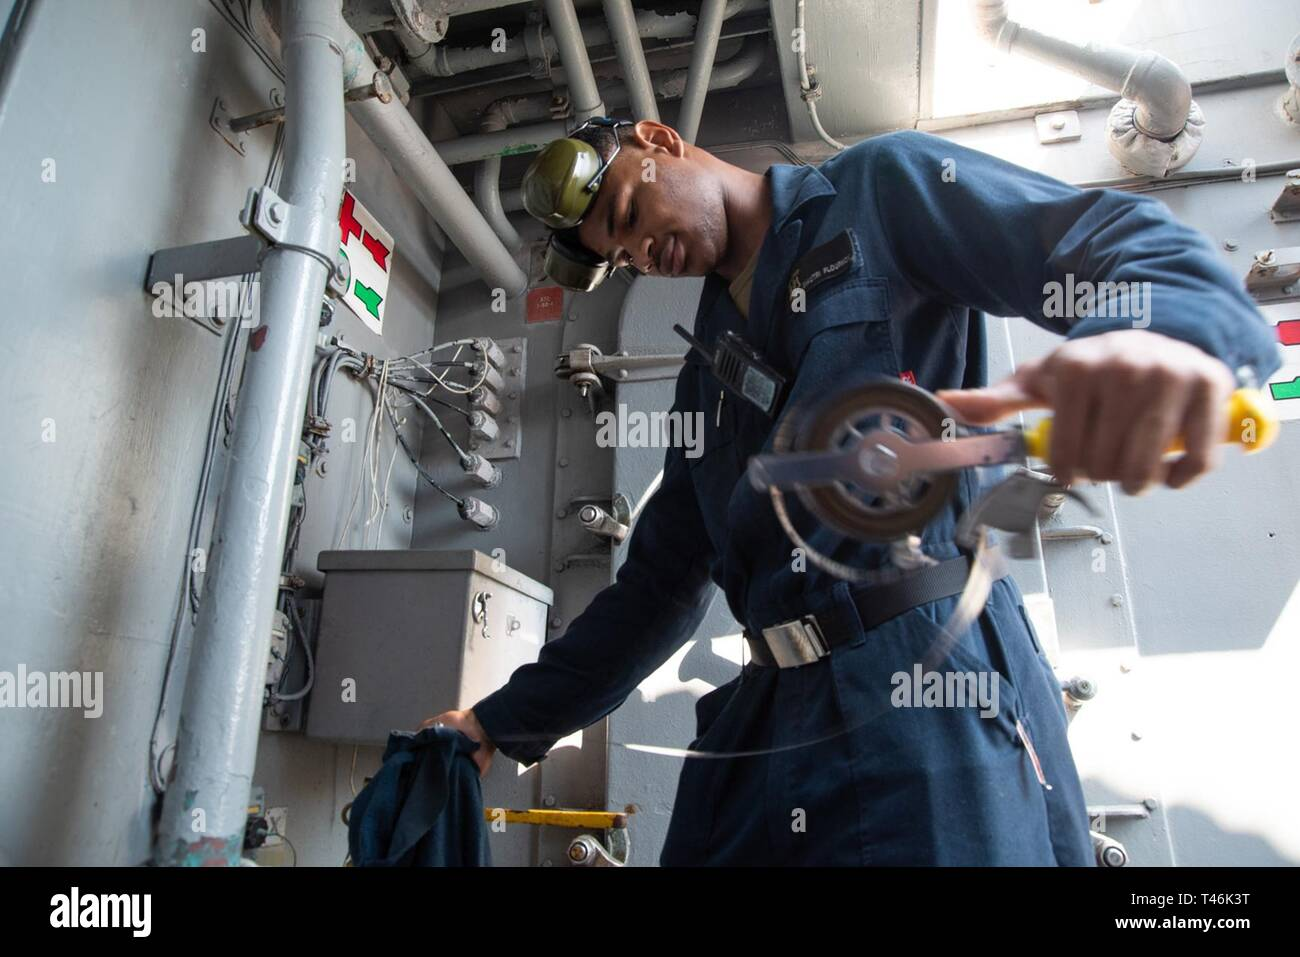 SOUTH CHINA SEA (March 16, 2019) Engineman Fireman Diautri Flournoy, from San Diego, California, measures fuel levels aboard the Avenger-class mine countermeasures ship USS Chief (MCM 14) during a replenishment-at-sea with USNS Guadalupe (T-AO 200). Chief, part of Mine Countermeasure Squadron 7, is operating in the Indo-Pacific region to enhance interoperability with partners and serve as a ready-response platform for contingency operations. - Stock Image